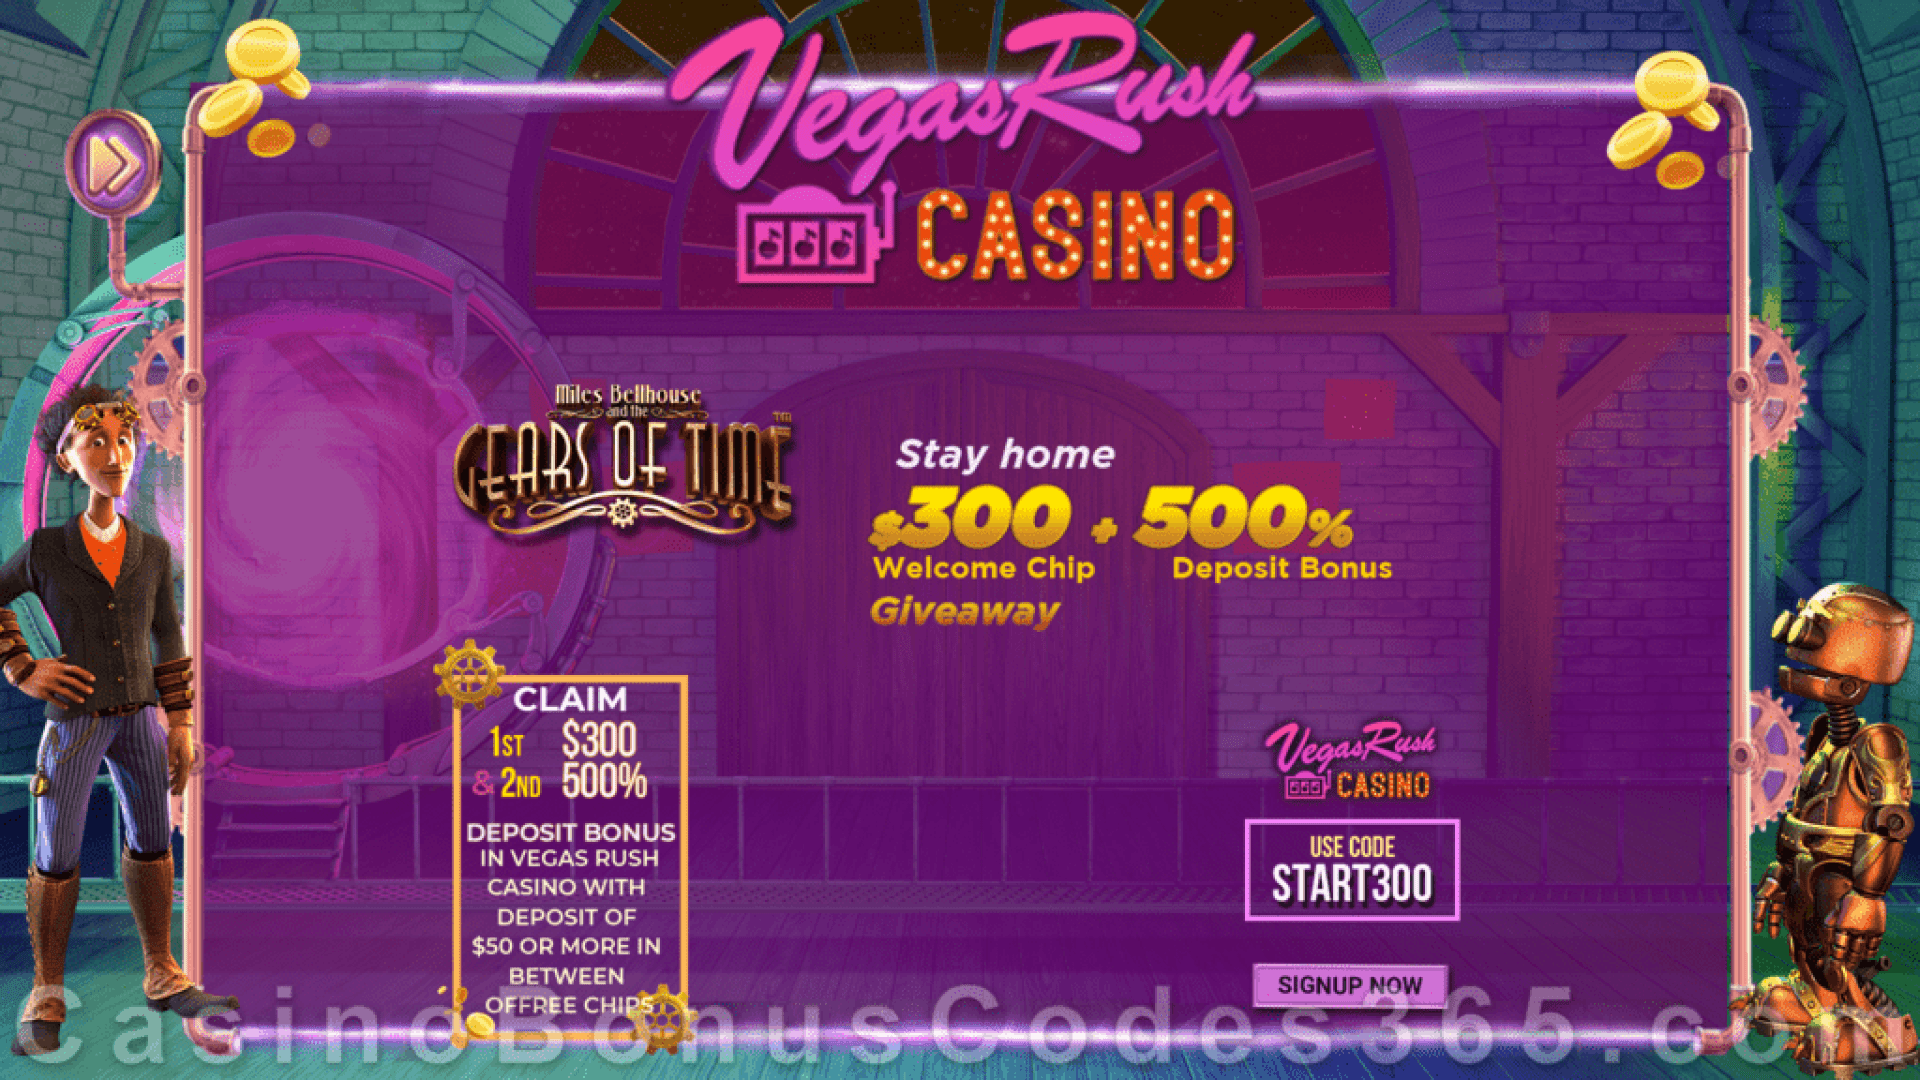 Vegas Rush Casino $300 No Deposit FREE Chip plus 500% Match Betsoft Miles Bellhouse and the Gears of Time Special Bonus Package